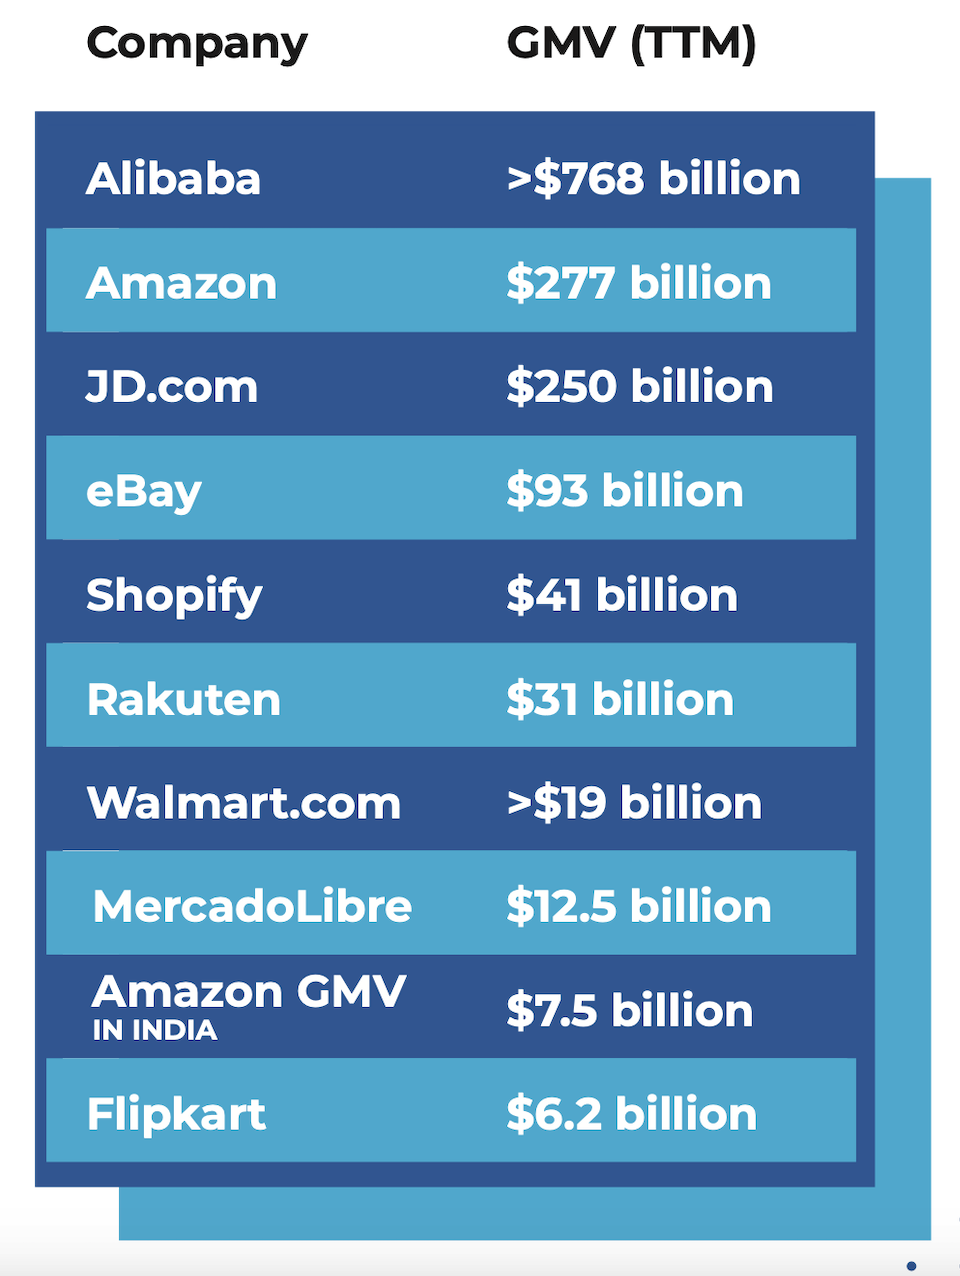 Amazon isn't the only huge player in global ecommerce, and it's important not to ignore other marketplaces.